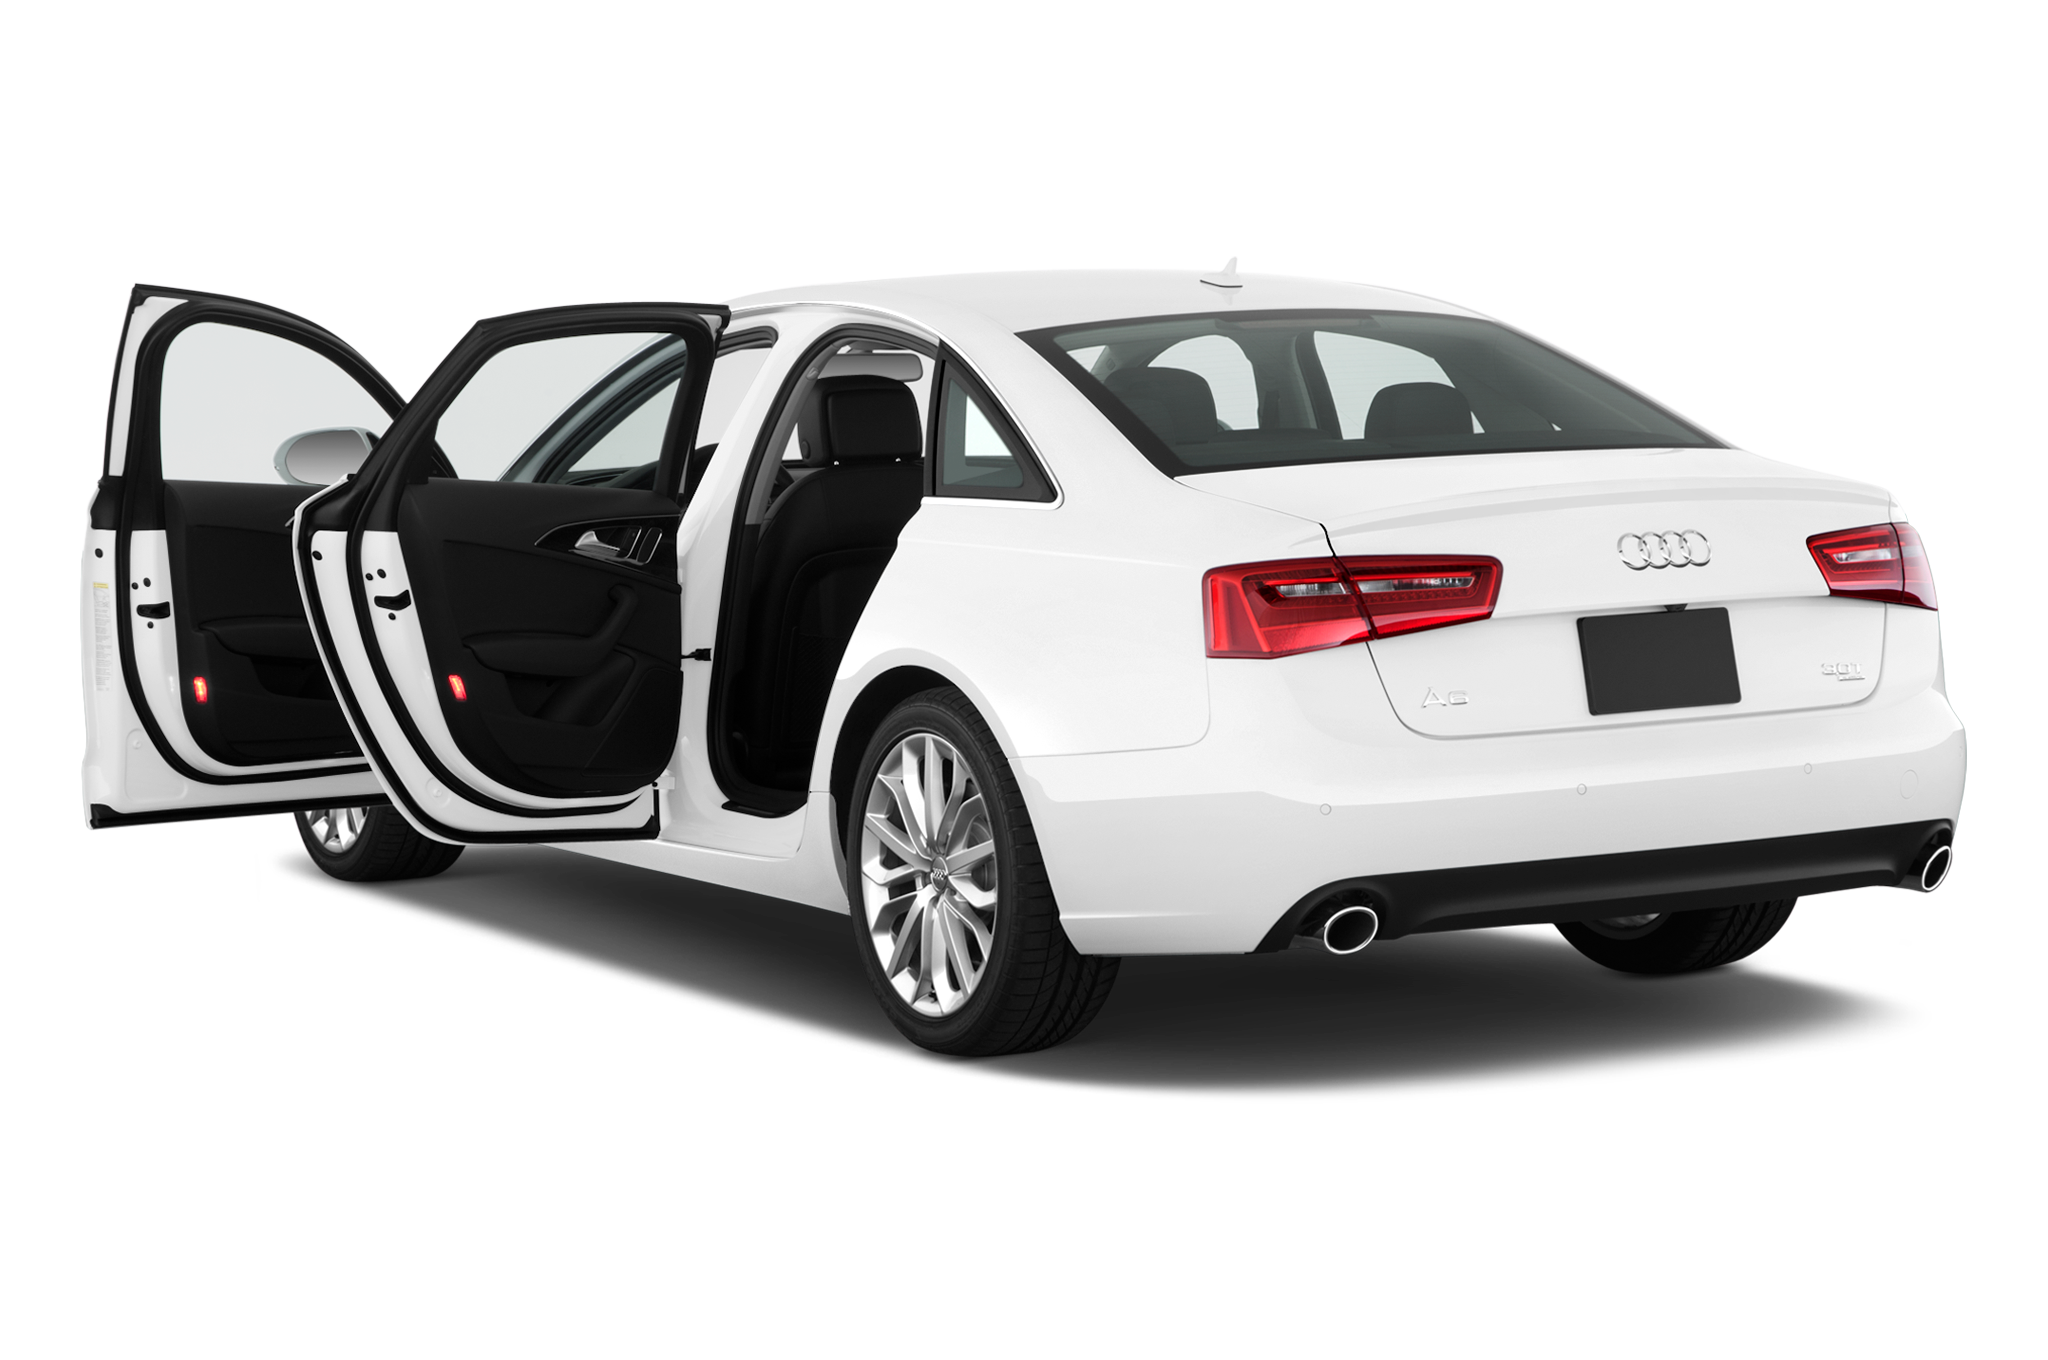 2016 audi a6 to arrive with updated styling new technology. Black Bedroom Furniture Sets. Home Design Ideas